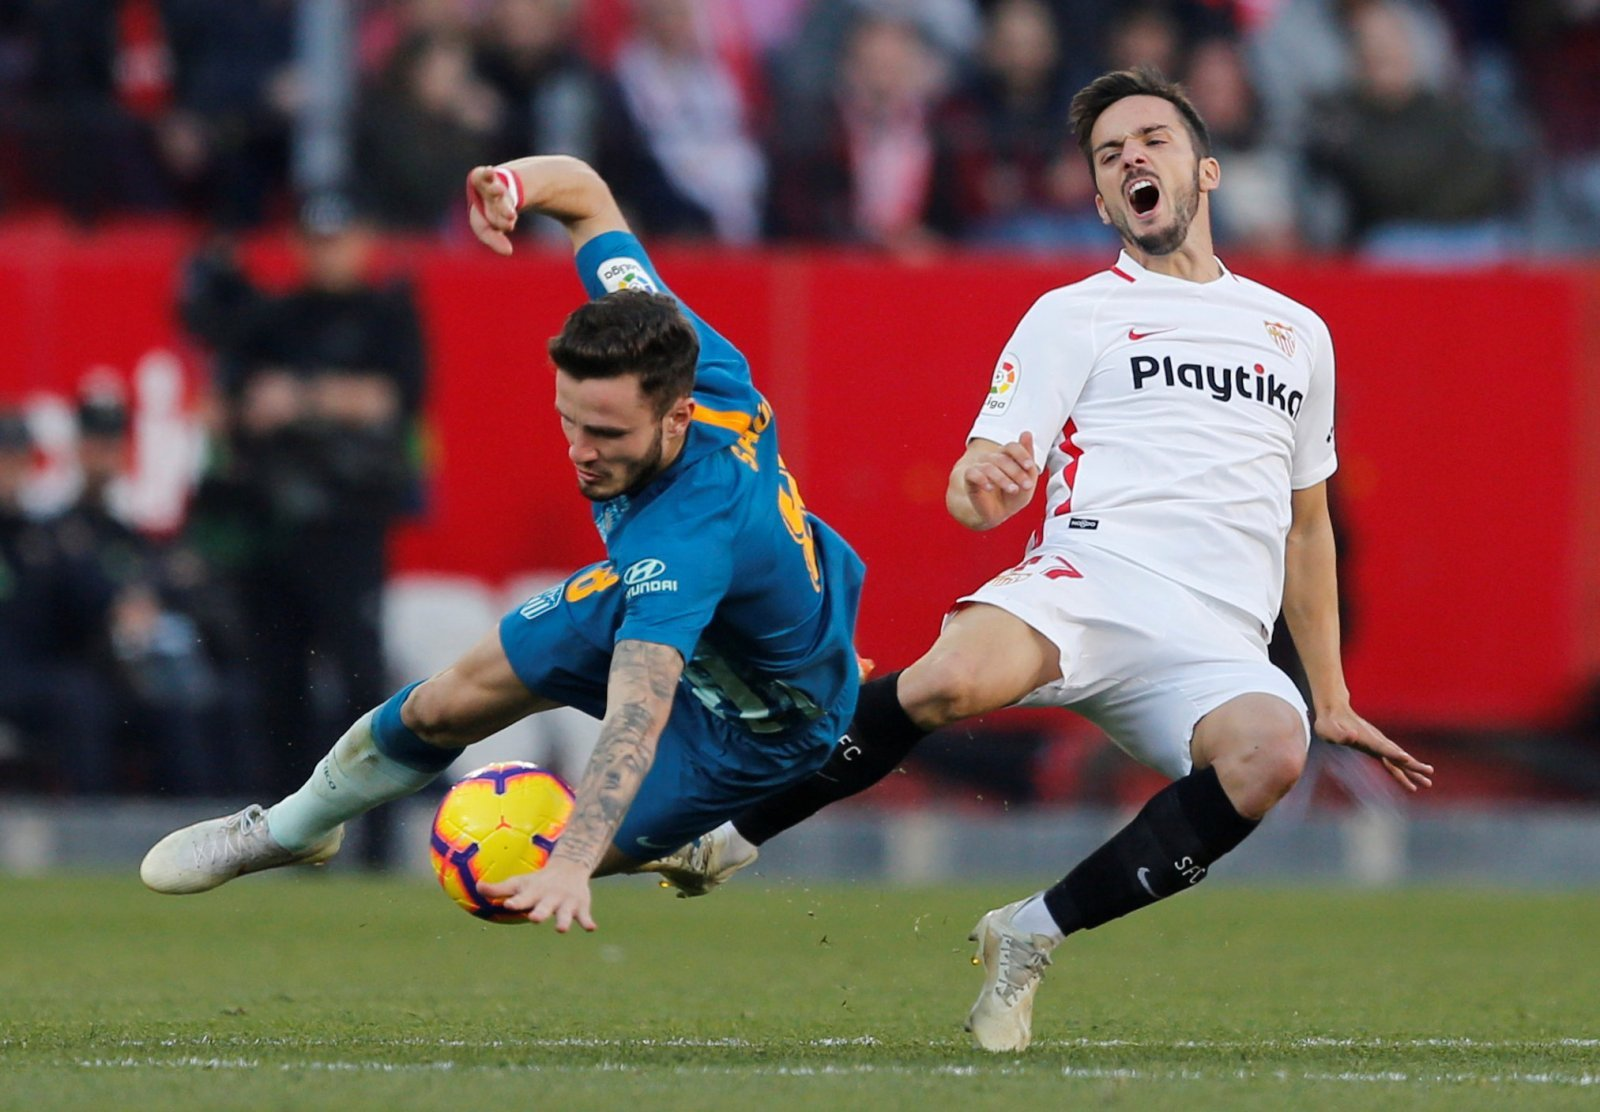 Pablo Sarabia would be an instant upgrade on Mesut Ozil for Arsenal